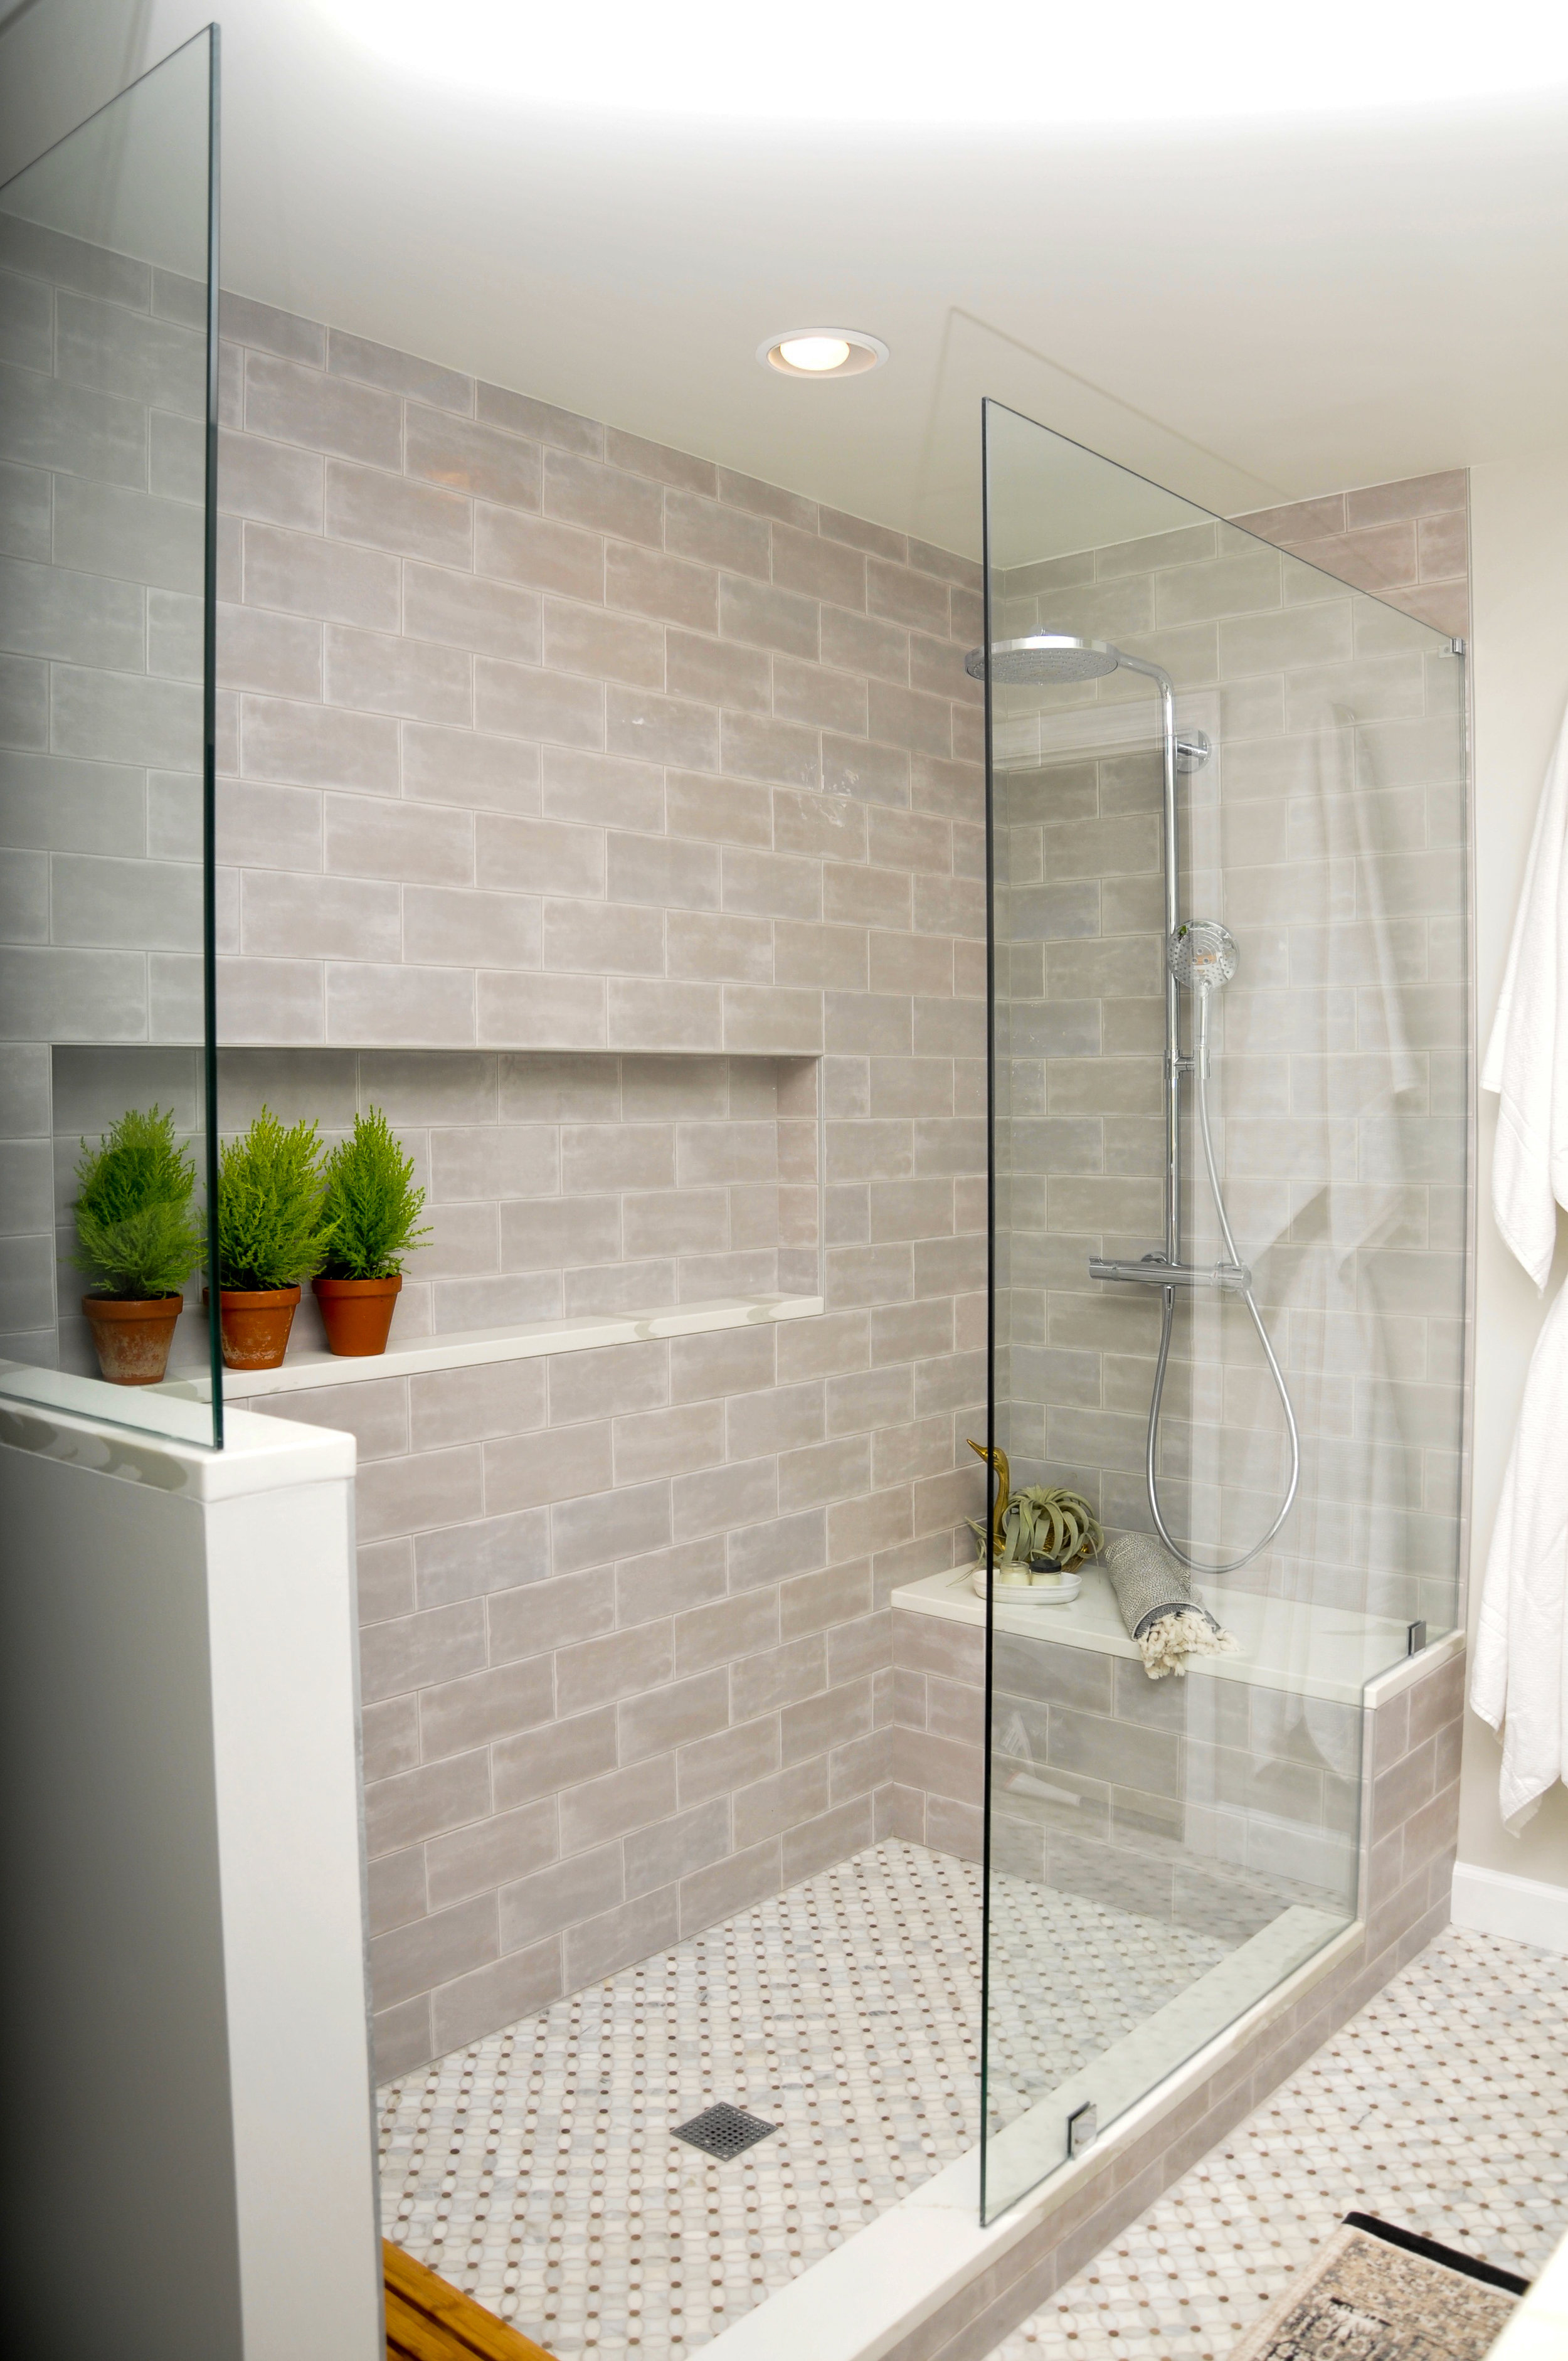 The large walk in shower has a European feel with partial glass enclosure and Hansgrohe fixtures. {Photograph by Brooke Mullins Photography}